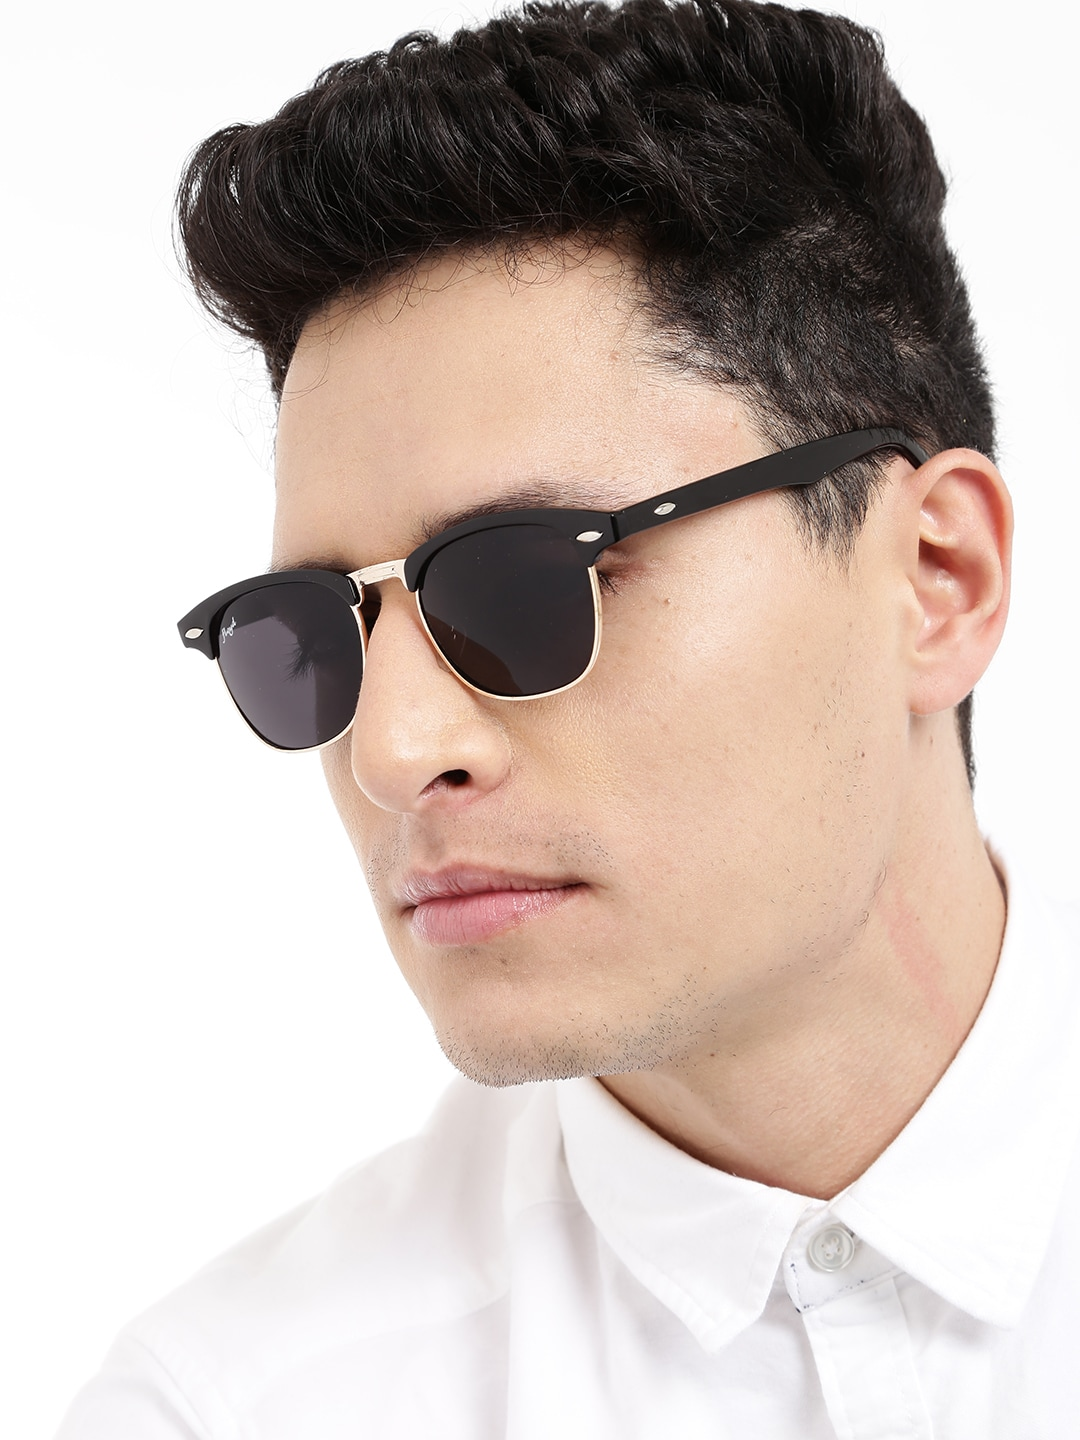 Sunglasses Size For Small Face  sunglasses sunglasses online in india